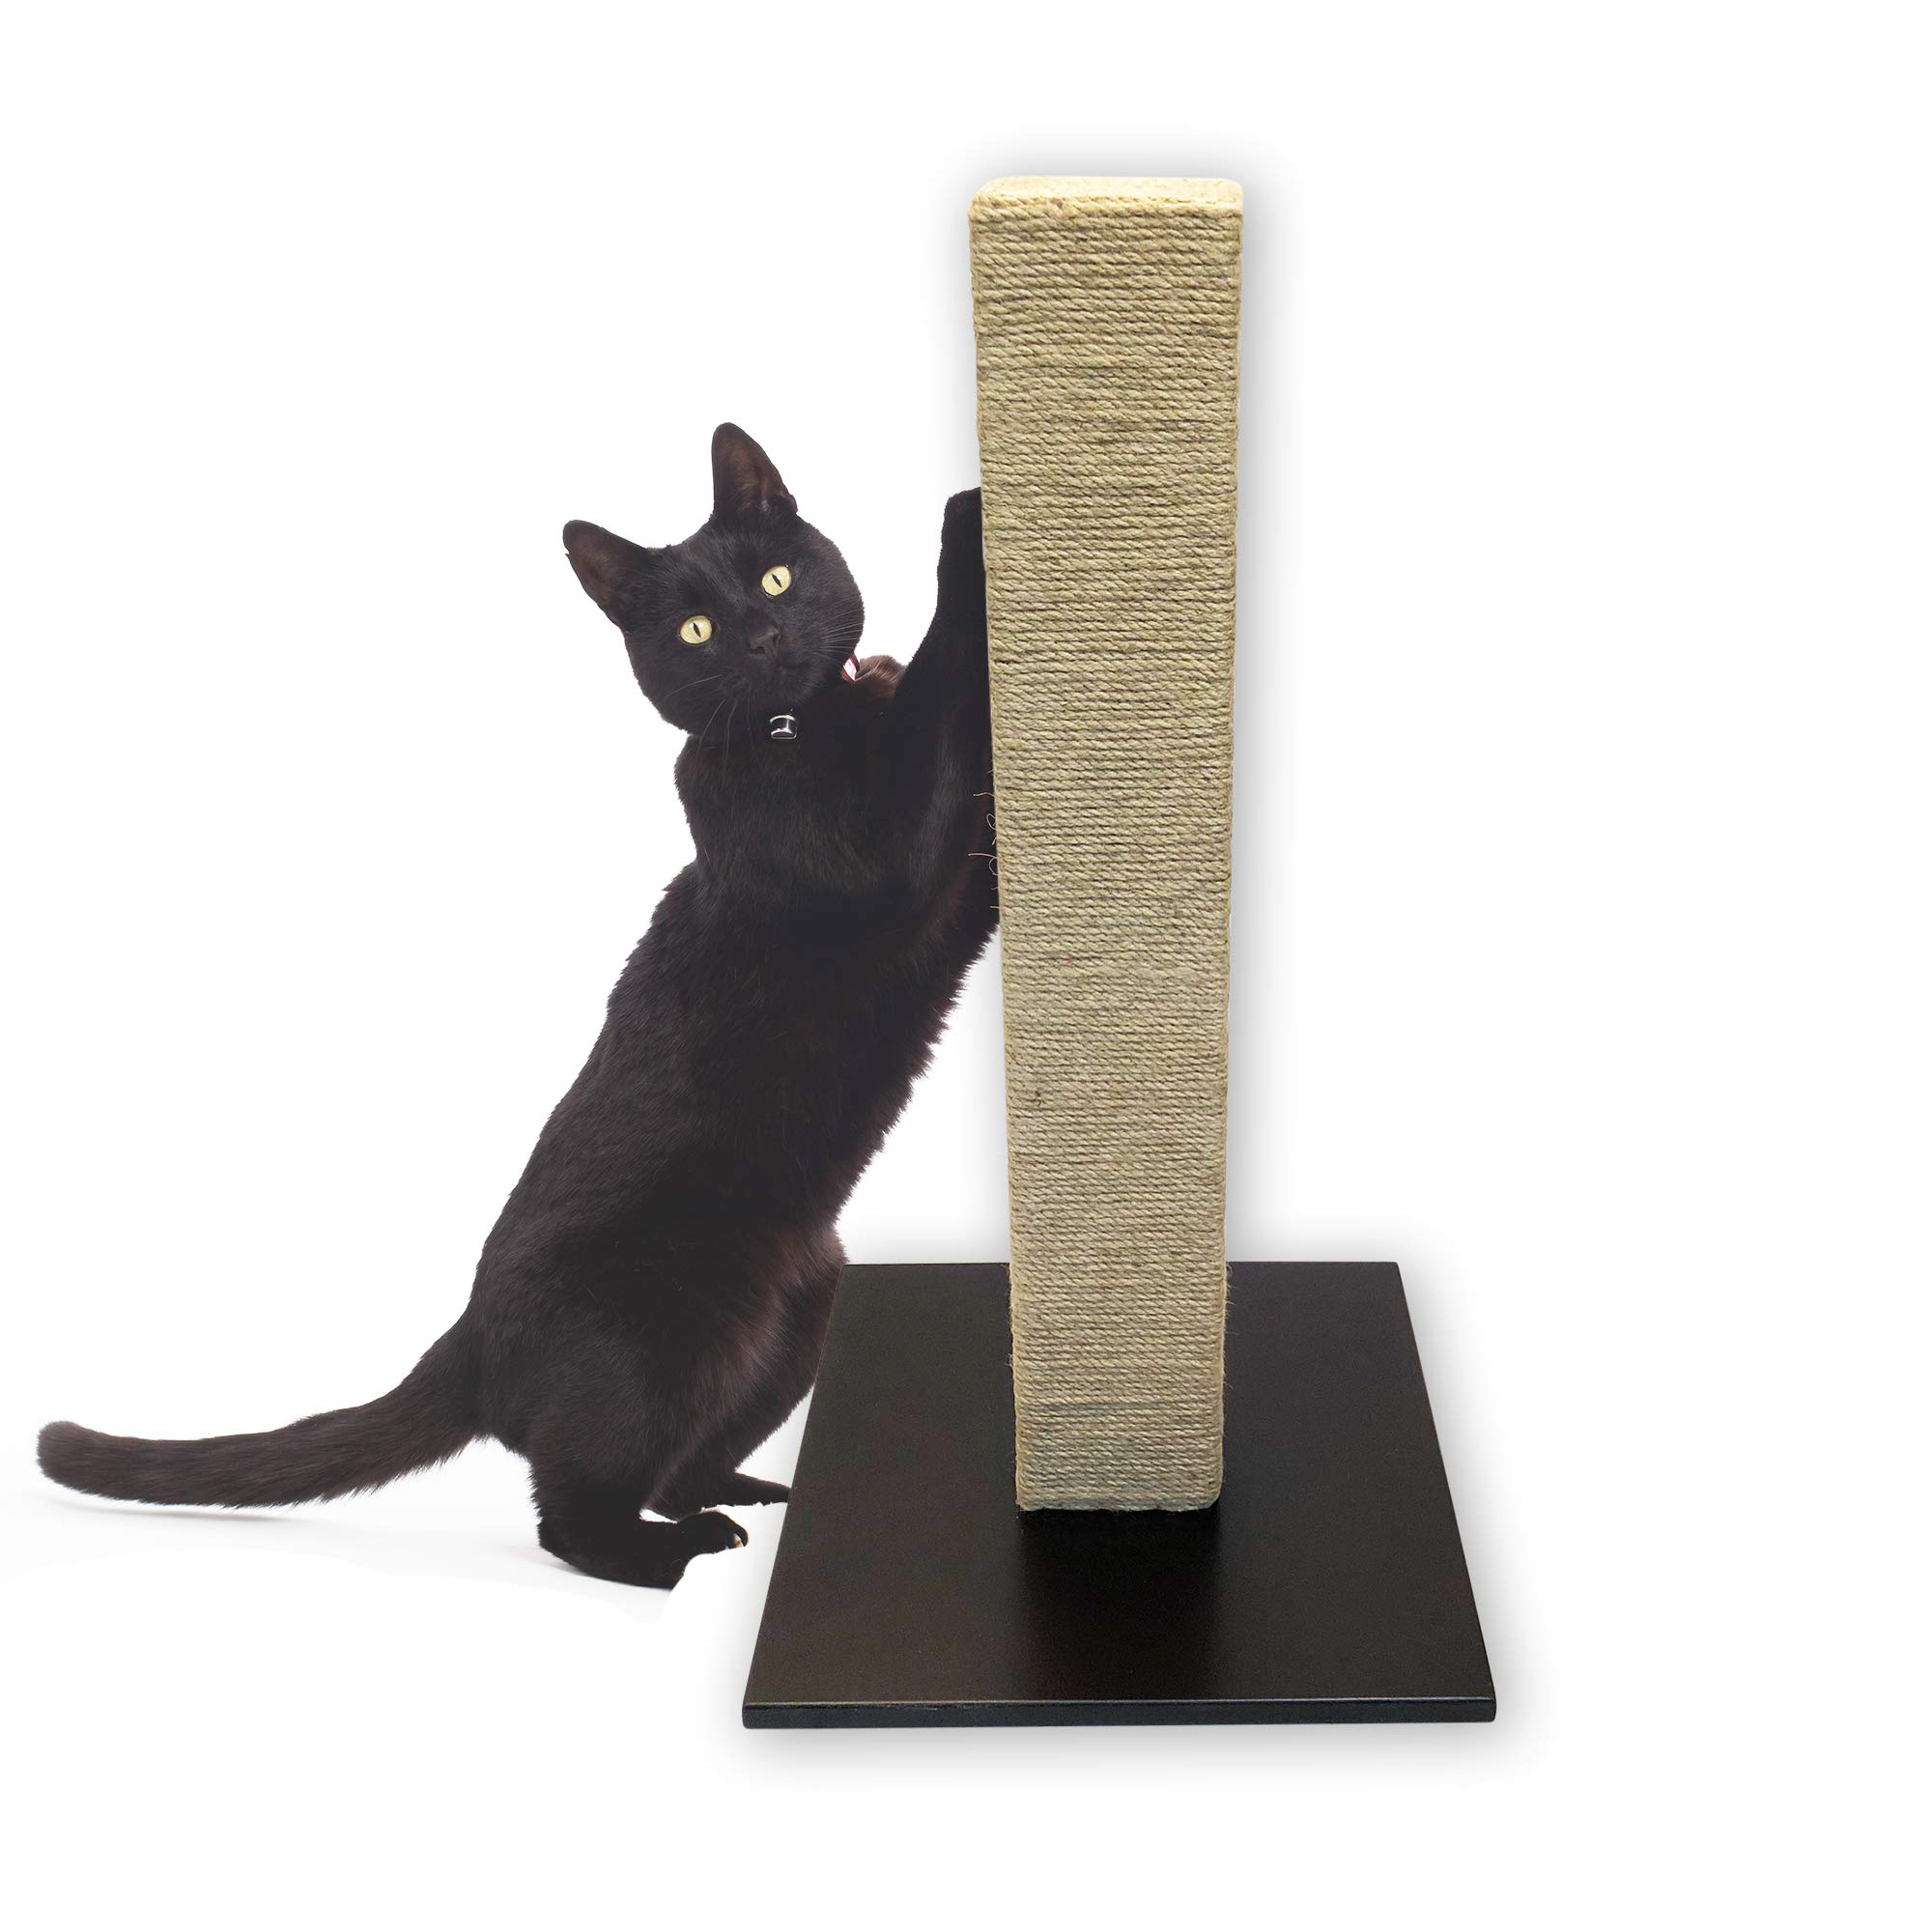 Pet Craft Supply 29'' Tall Square Cat Scratching Post Natural Sisal Wrapped Cat Tree with Wooden Base by Pet Craft Supply